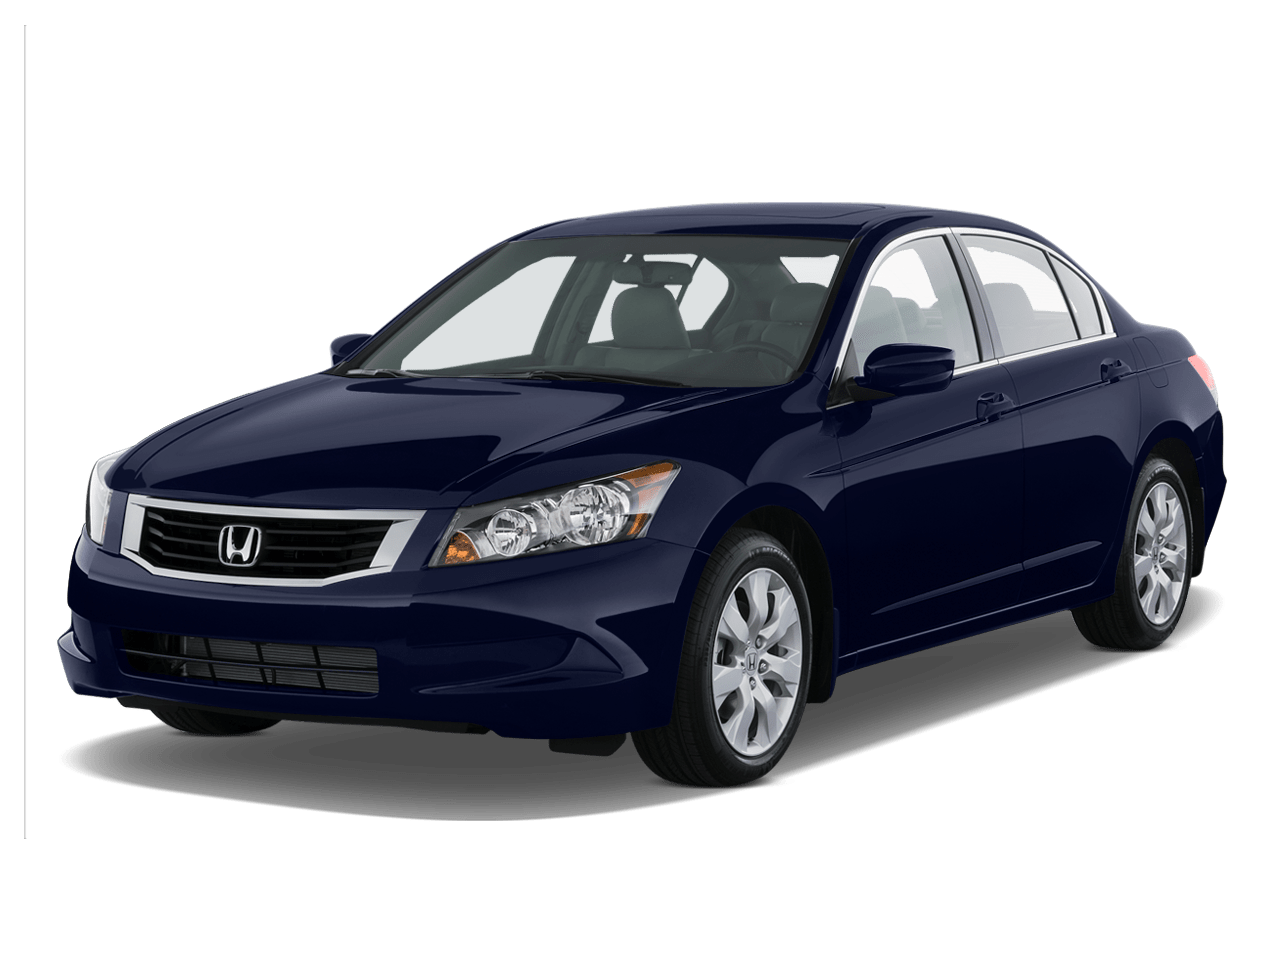 2008 honda accord reviews research accord prices u0026 specs motortrend 2008 honda accord rims 2008 [ 392:294 x 1280 Pixel ]